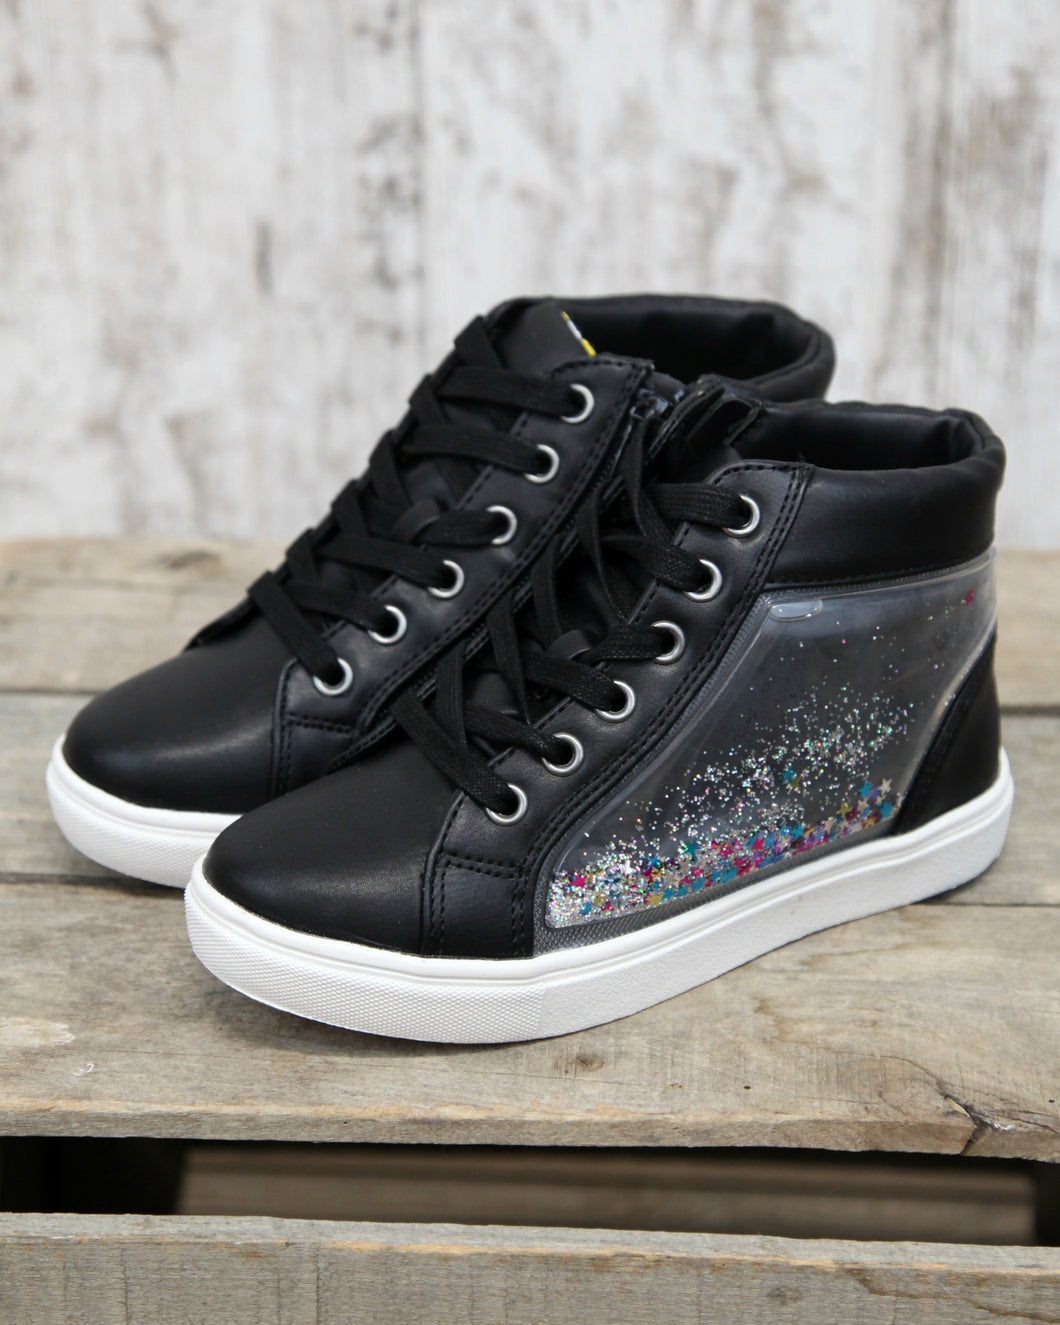 J Shakey High Top Sneaker w Floating Squishy Star Accent w Side Zip